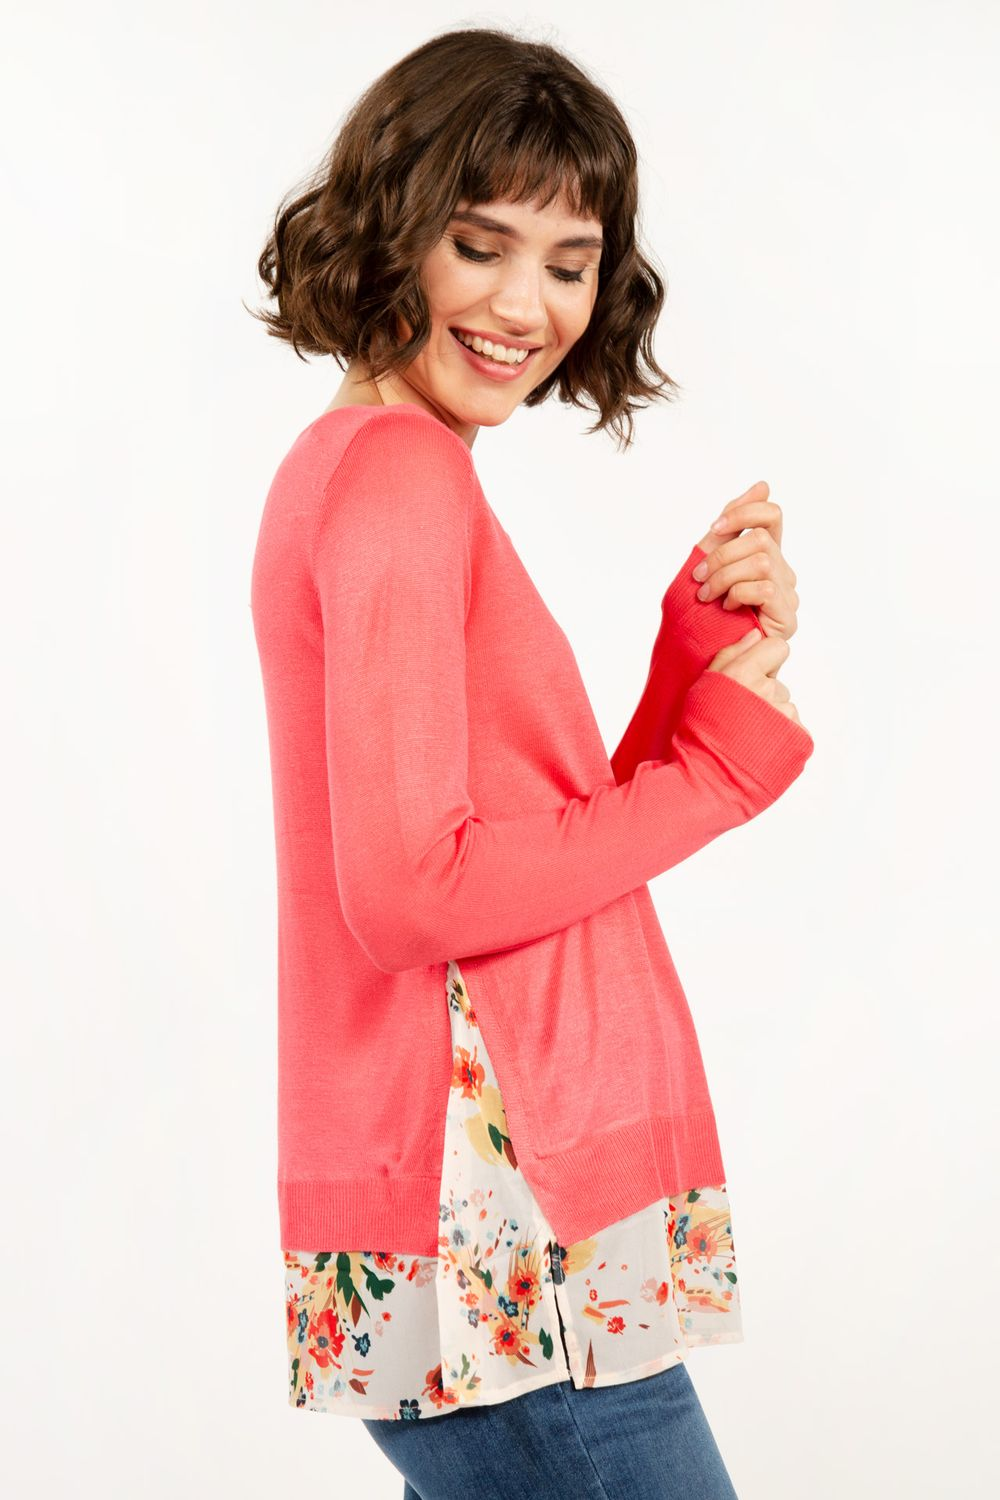 Sweater-Miss-Coral-40